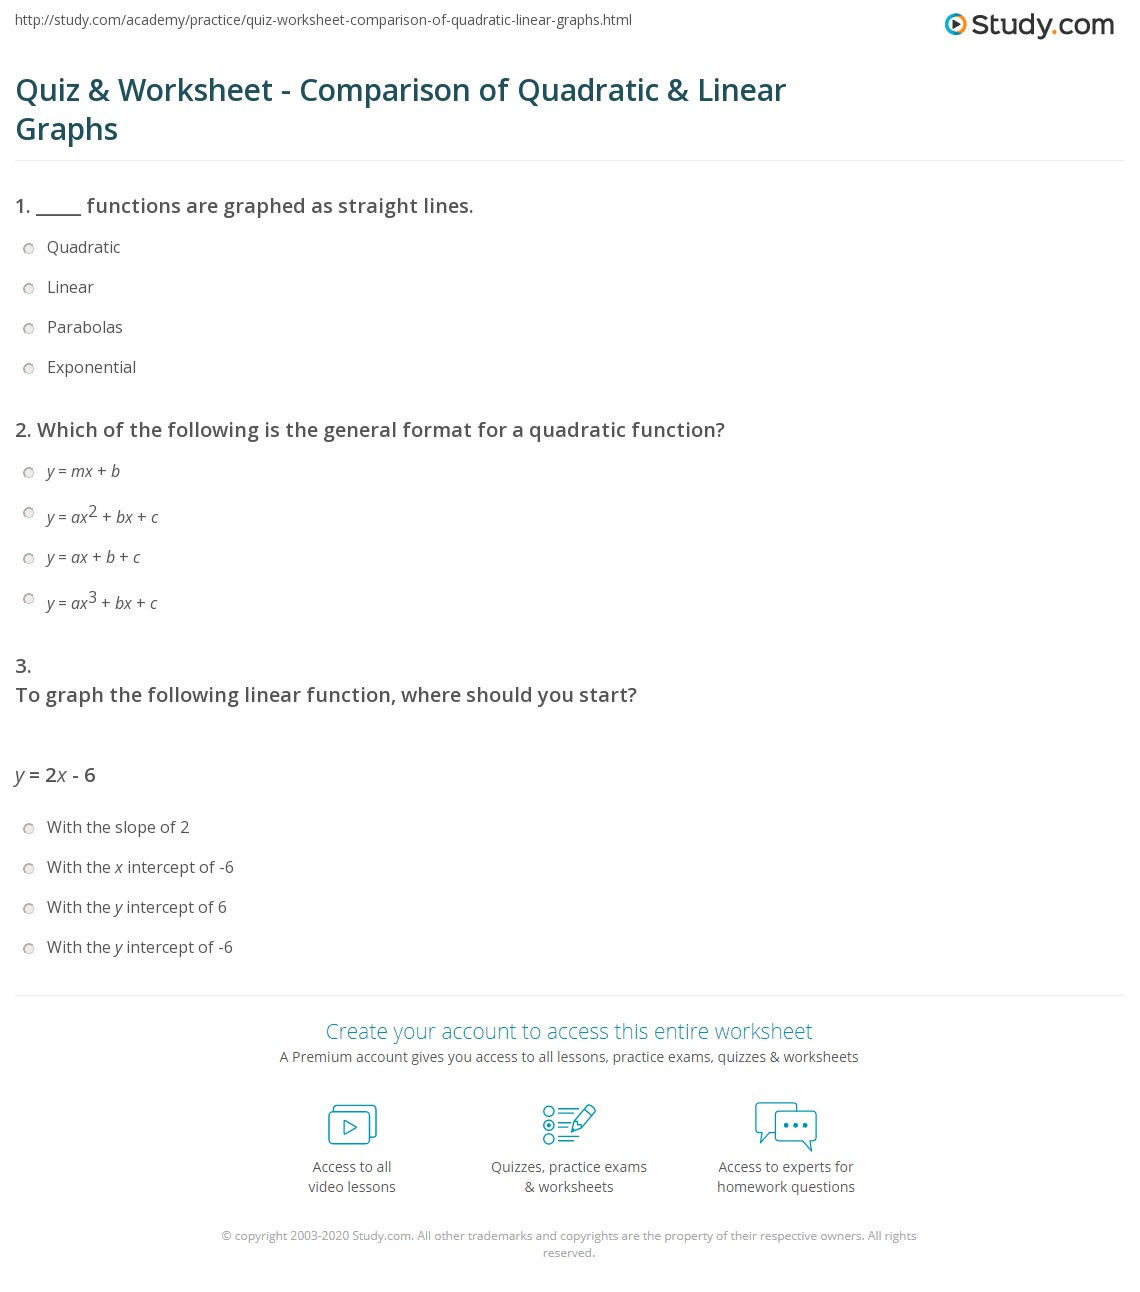 Quiz Worksheet Comparison Of Quadratic Linear Graphs